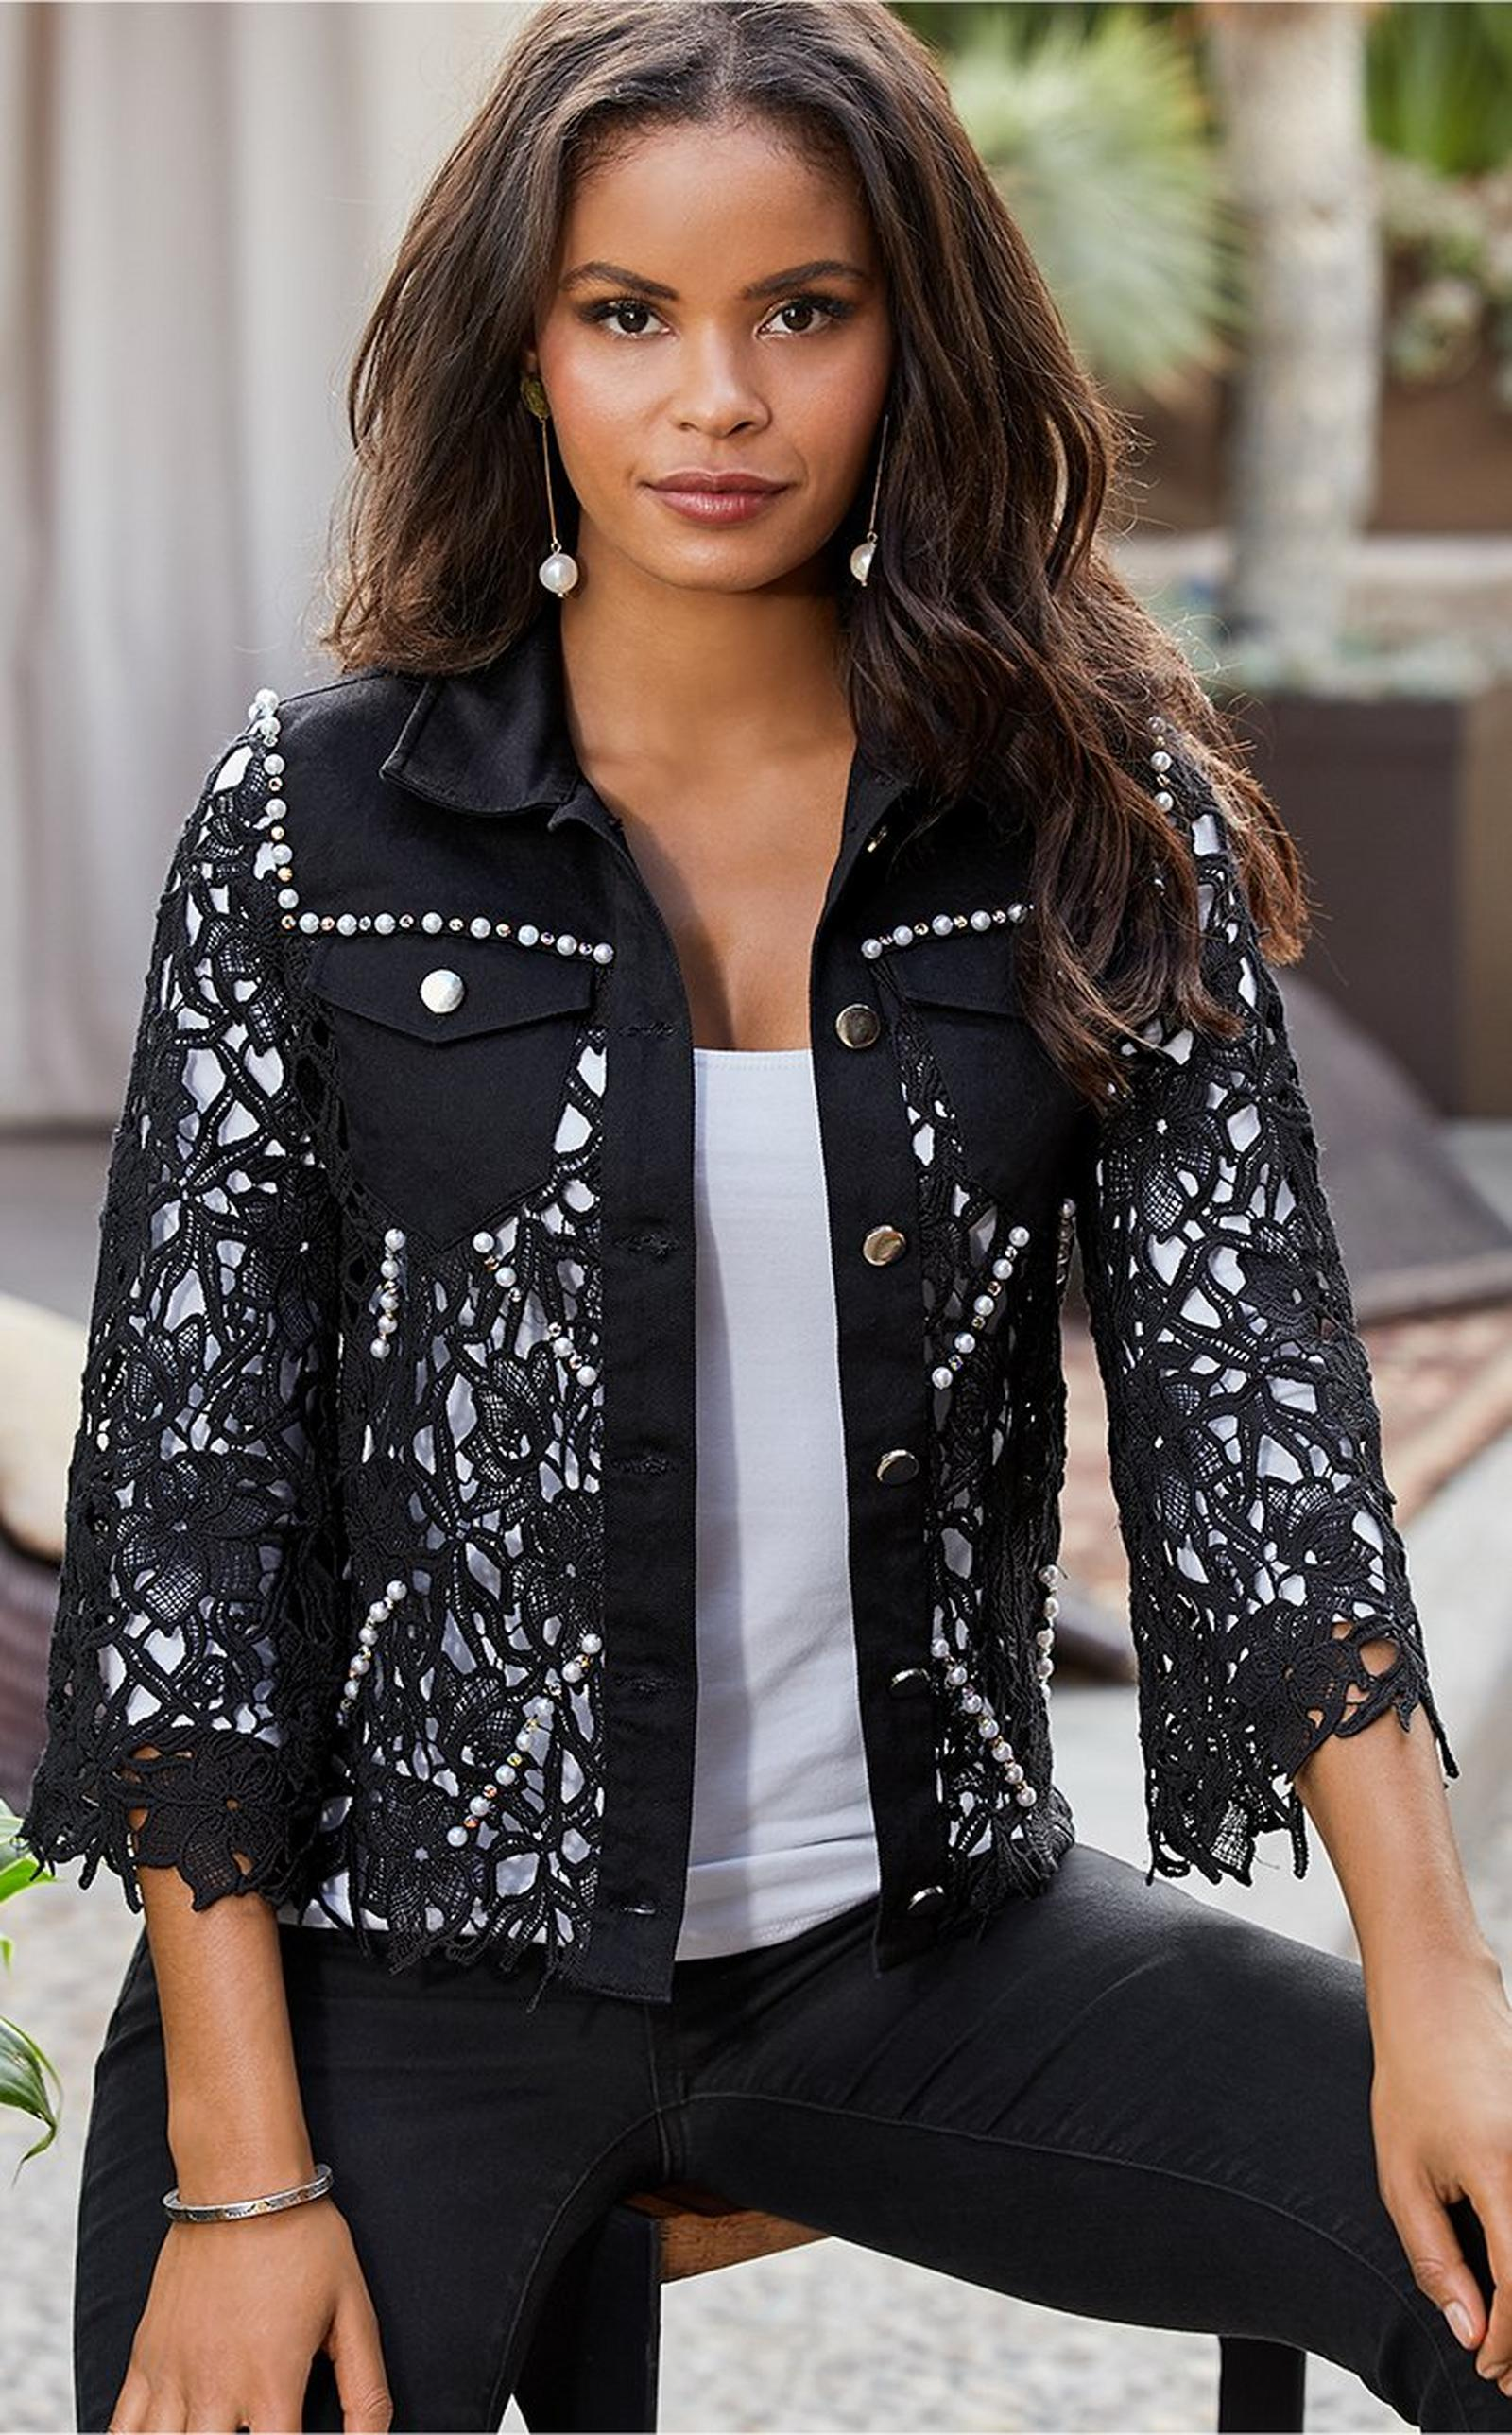 model wearing a black lacey embellished denim jacket over a white tank top and black jeans.